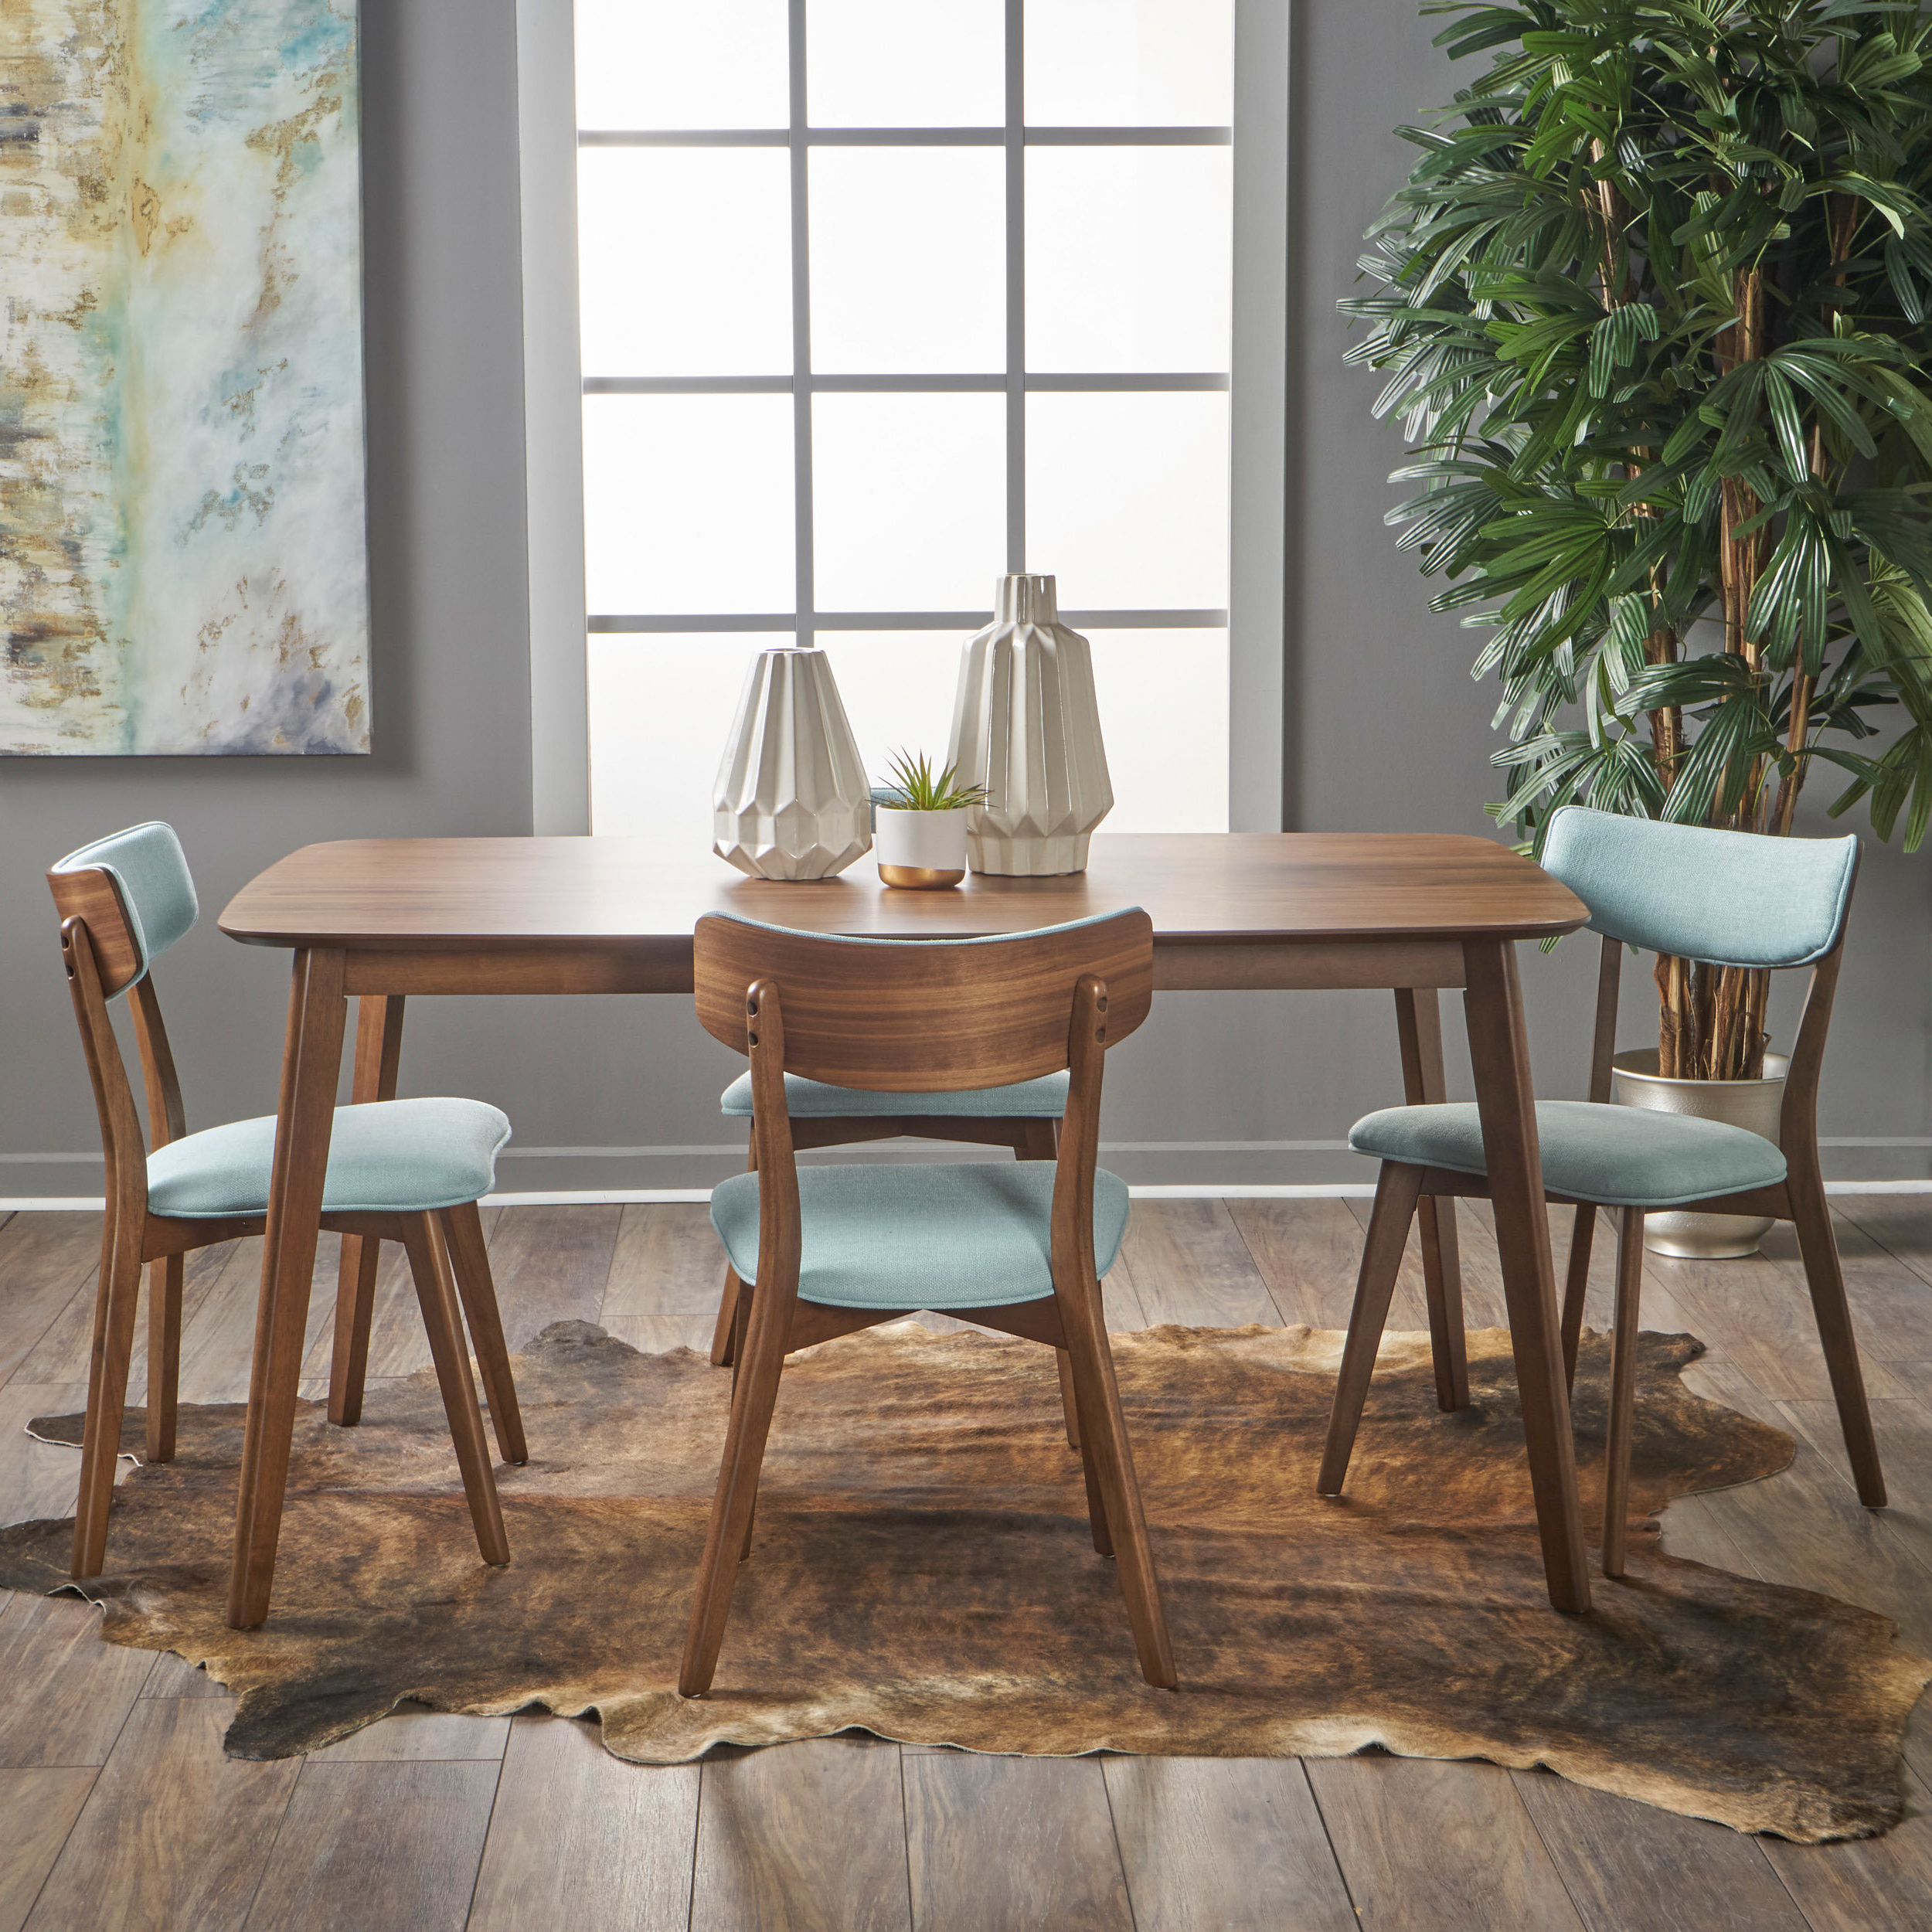 Allmodern Throughout Most Popular Liles 5 Piece Breakfast Nook Dining Sets (View 9 of 20)